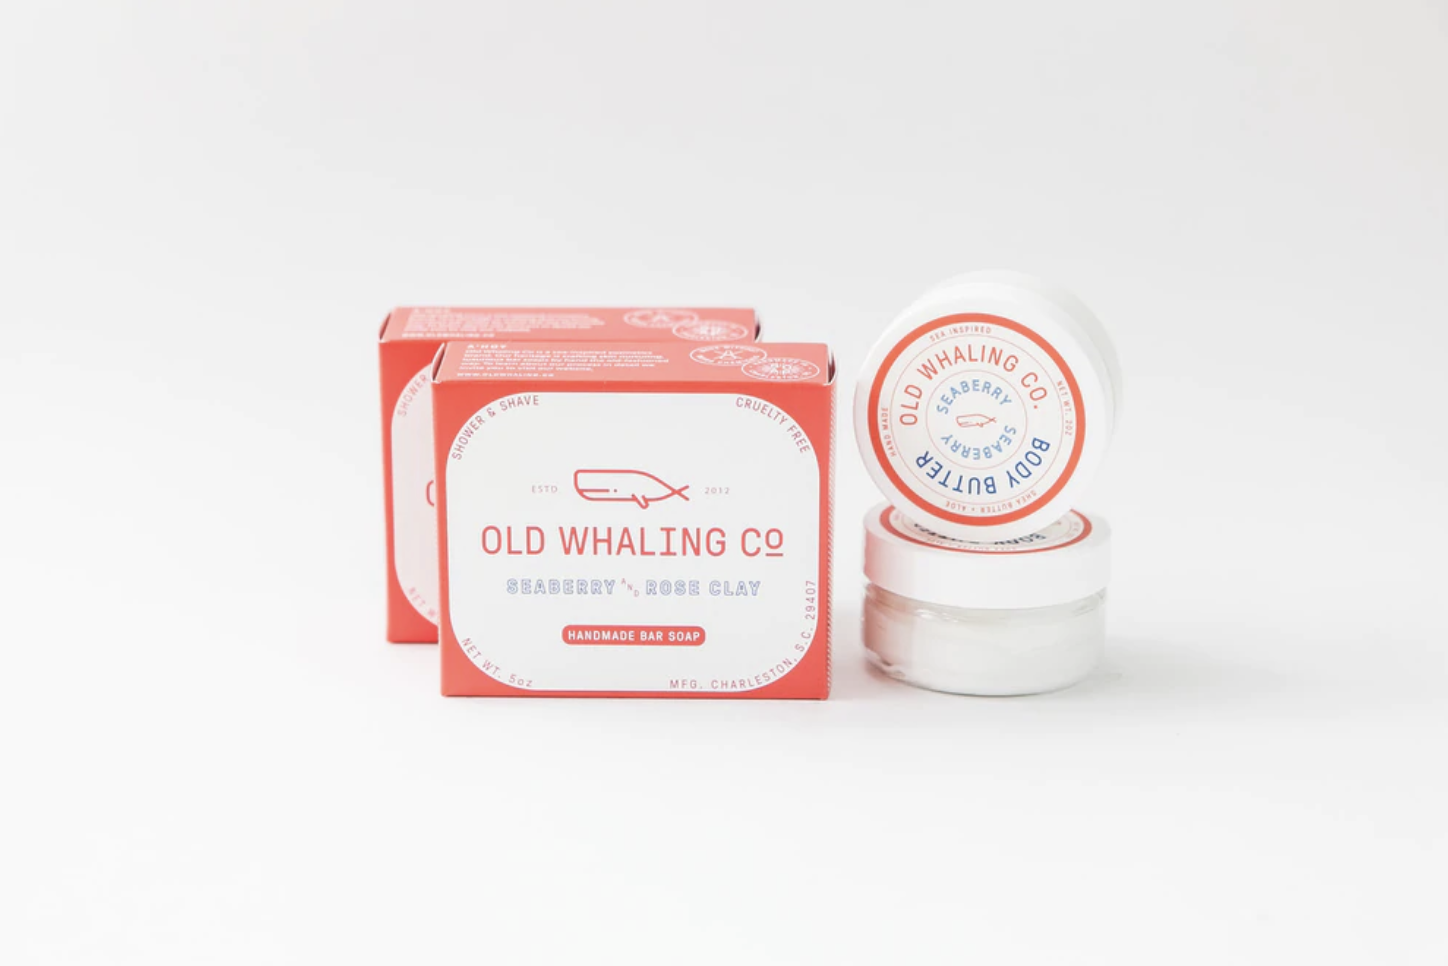 Old Whaling Co Soaps and Body Butter